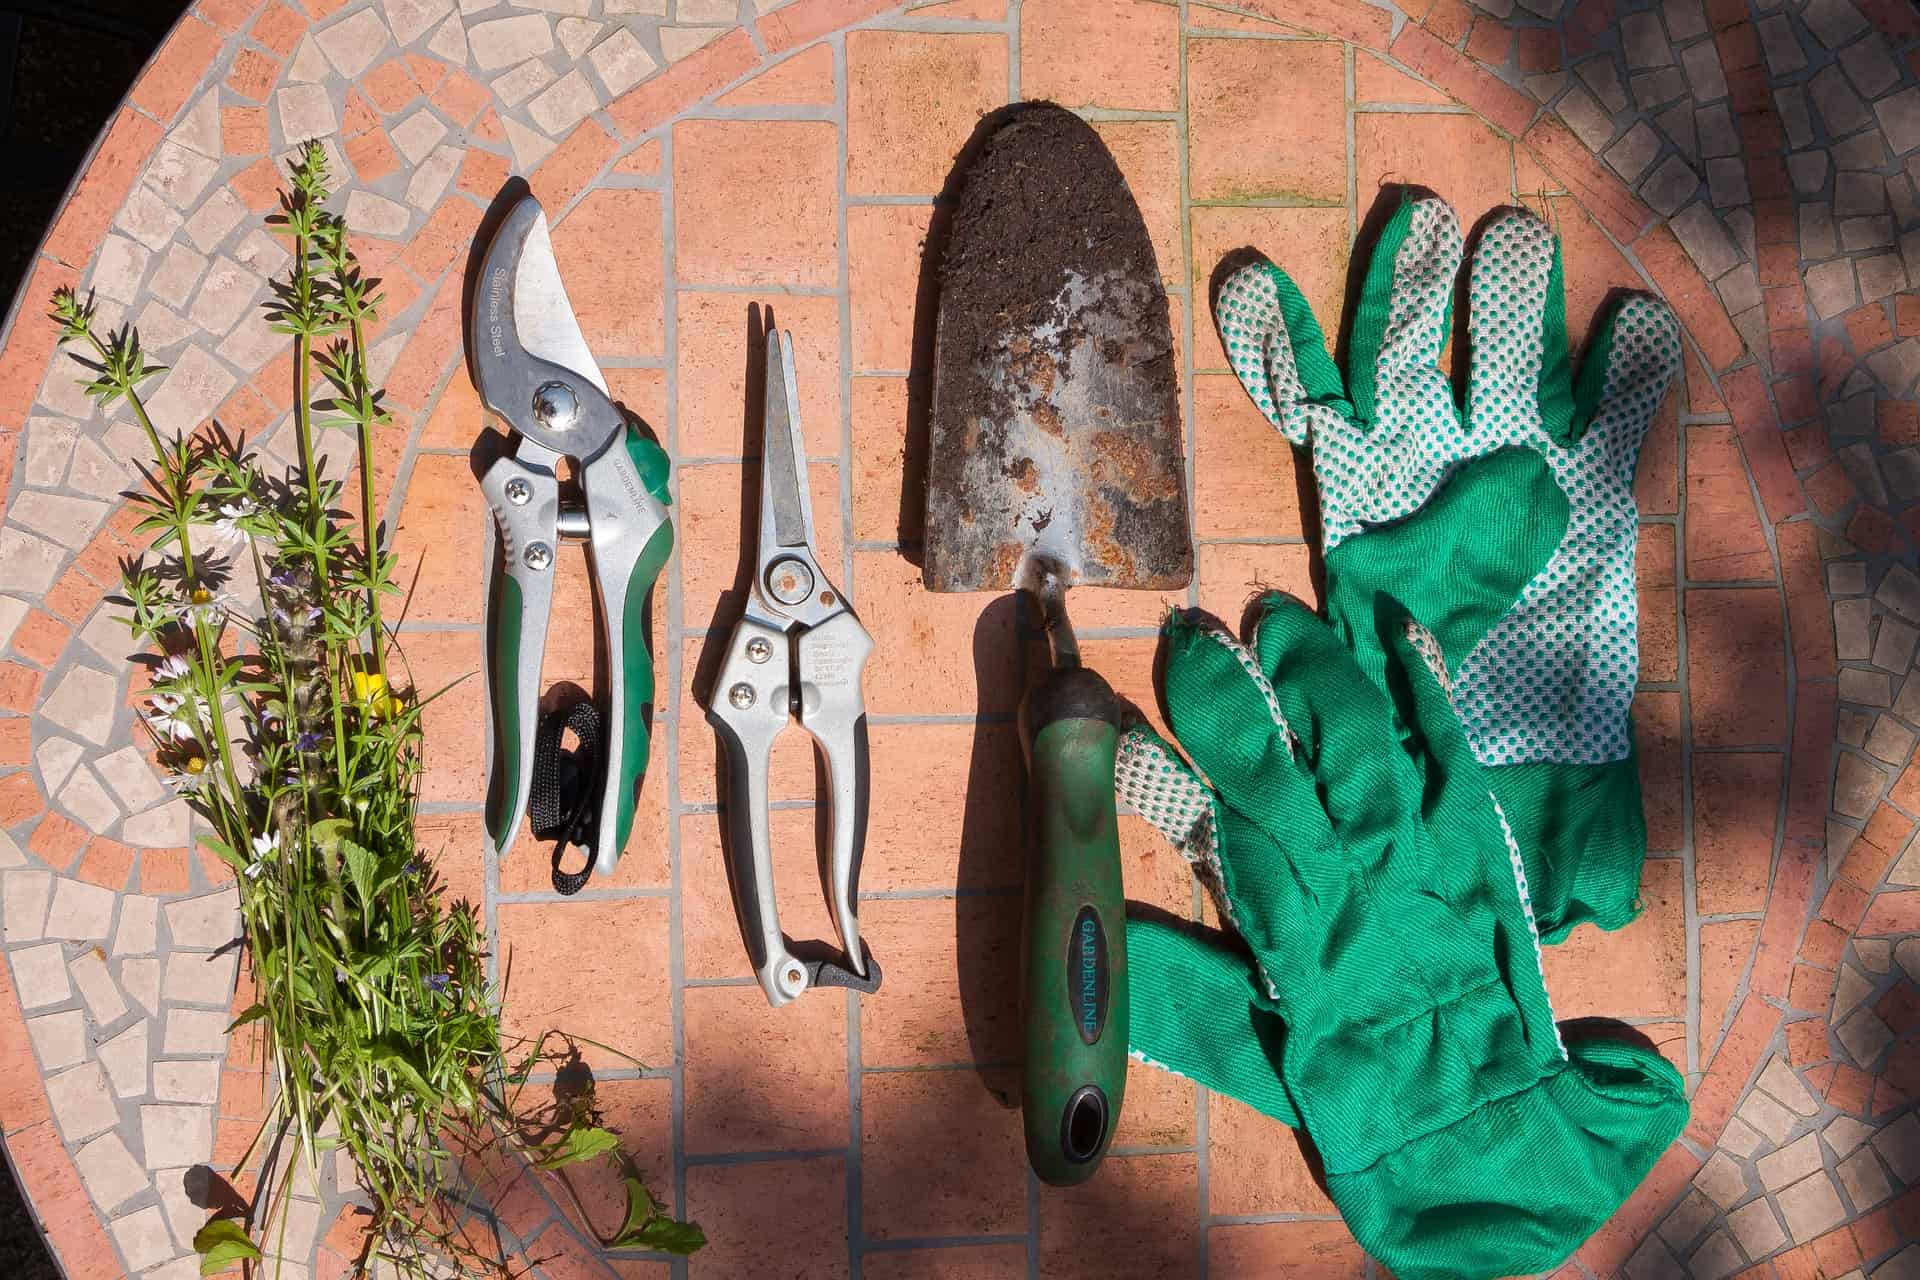 8 Uses of Gardening Shear And More Details